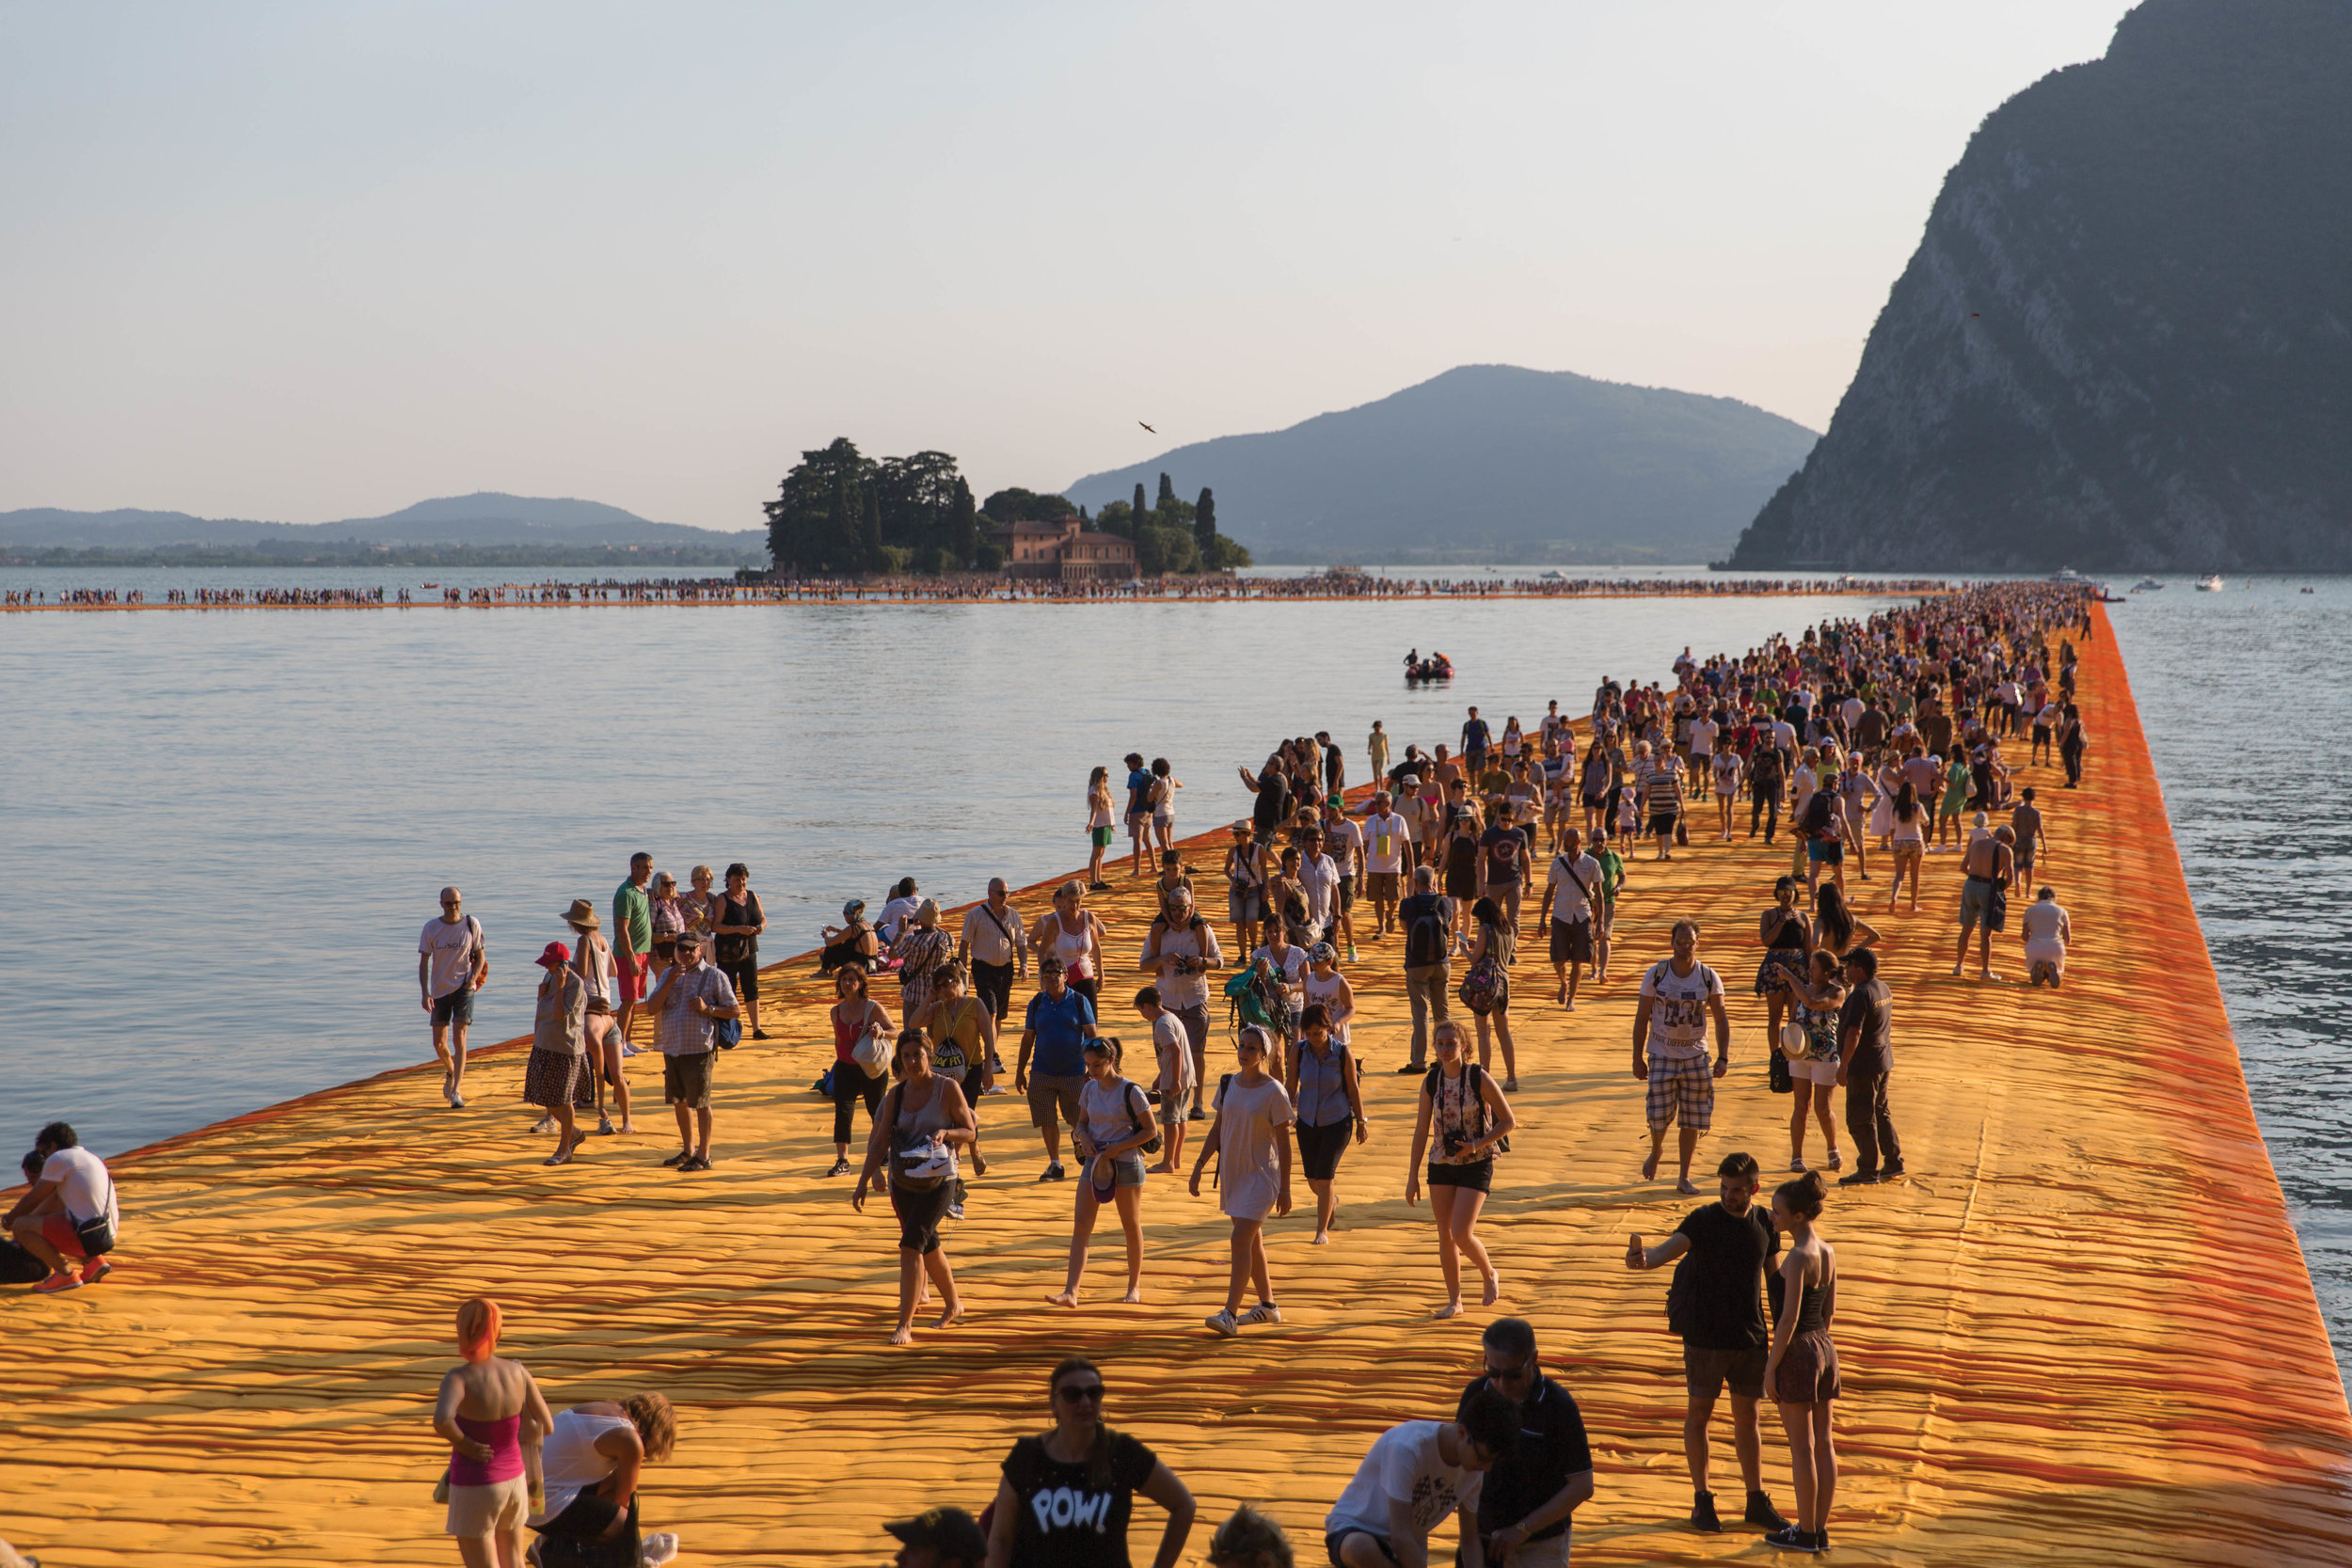 CHRISTO-FLOATINGPIERS-2016©LAMB-913.jpg